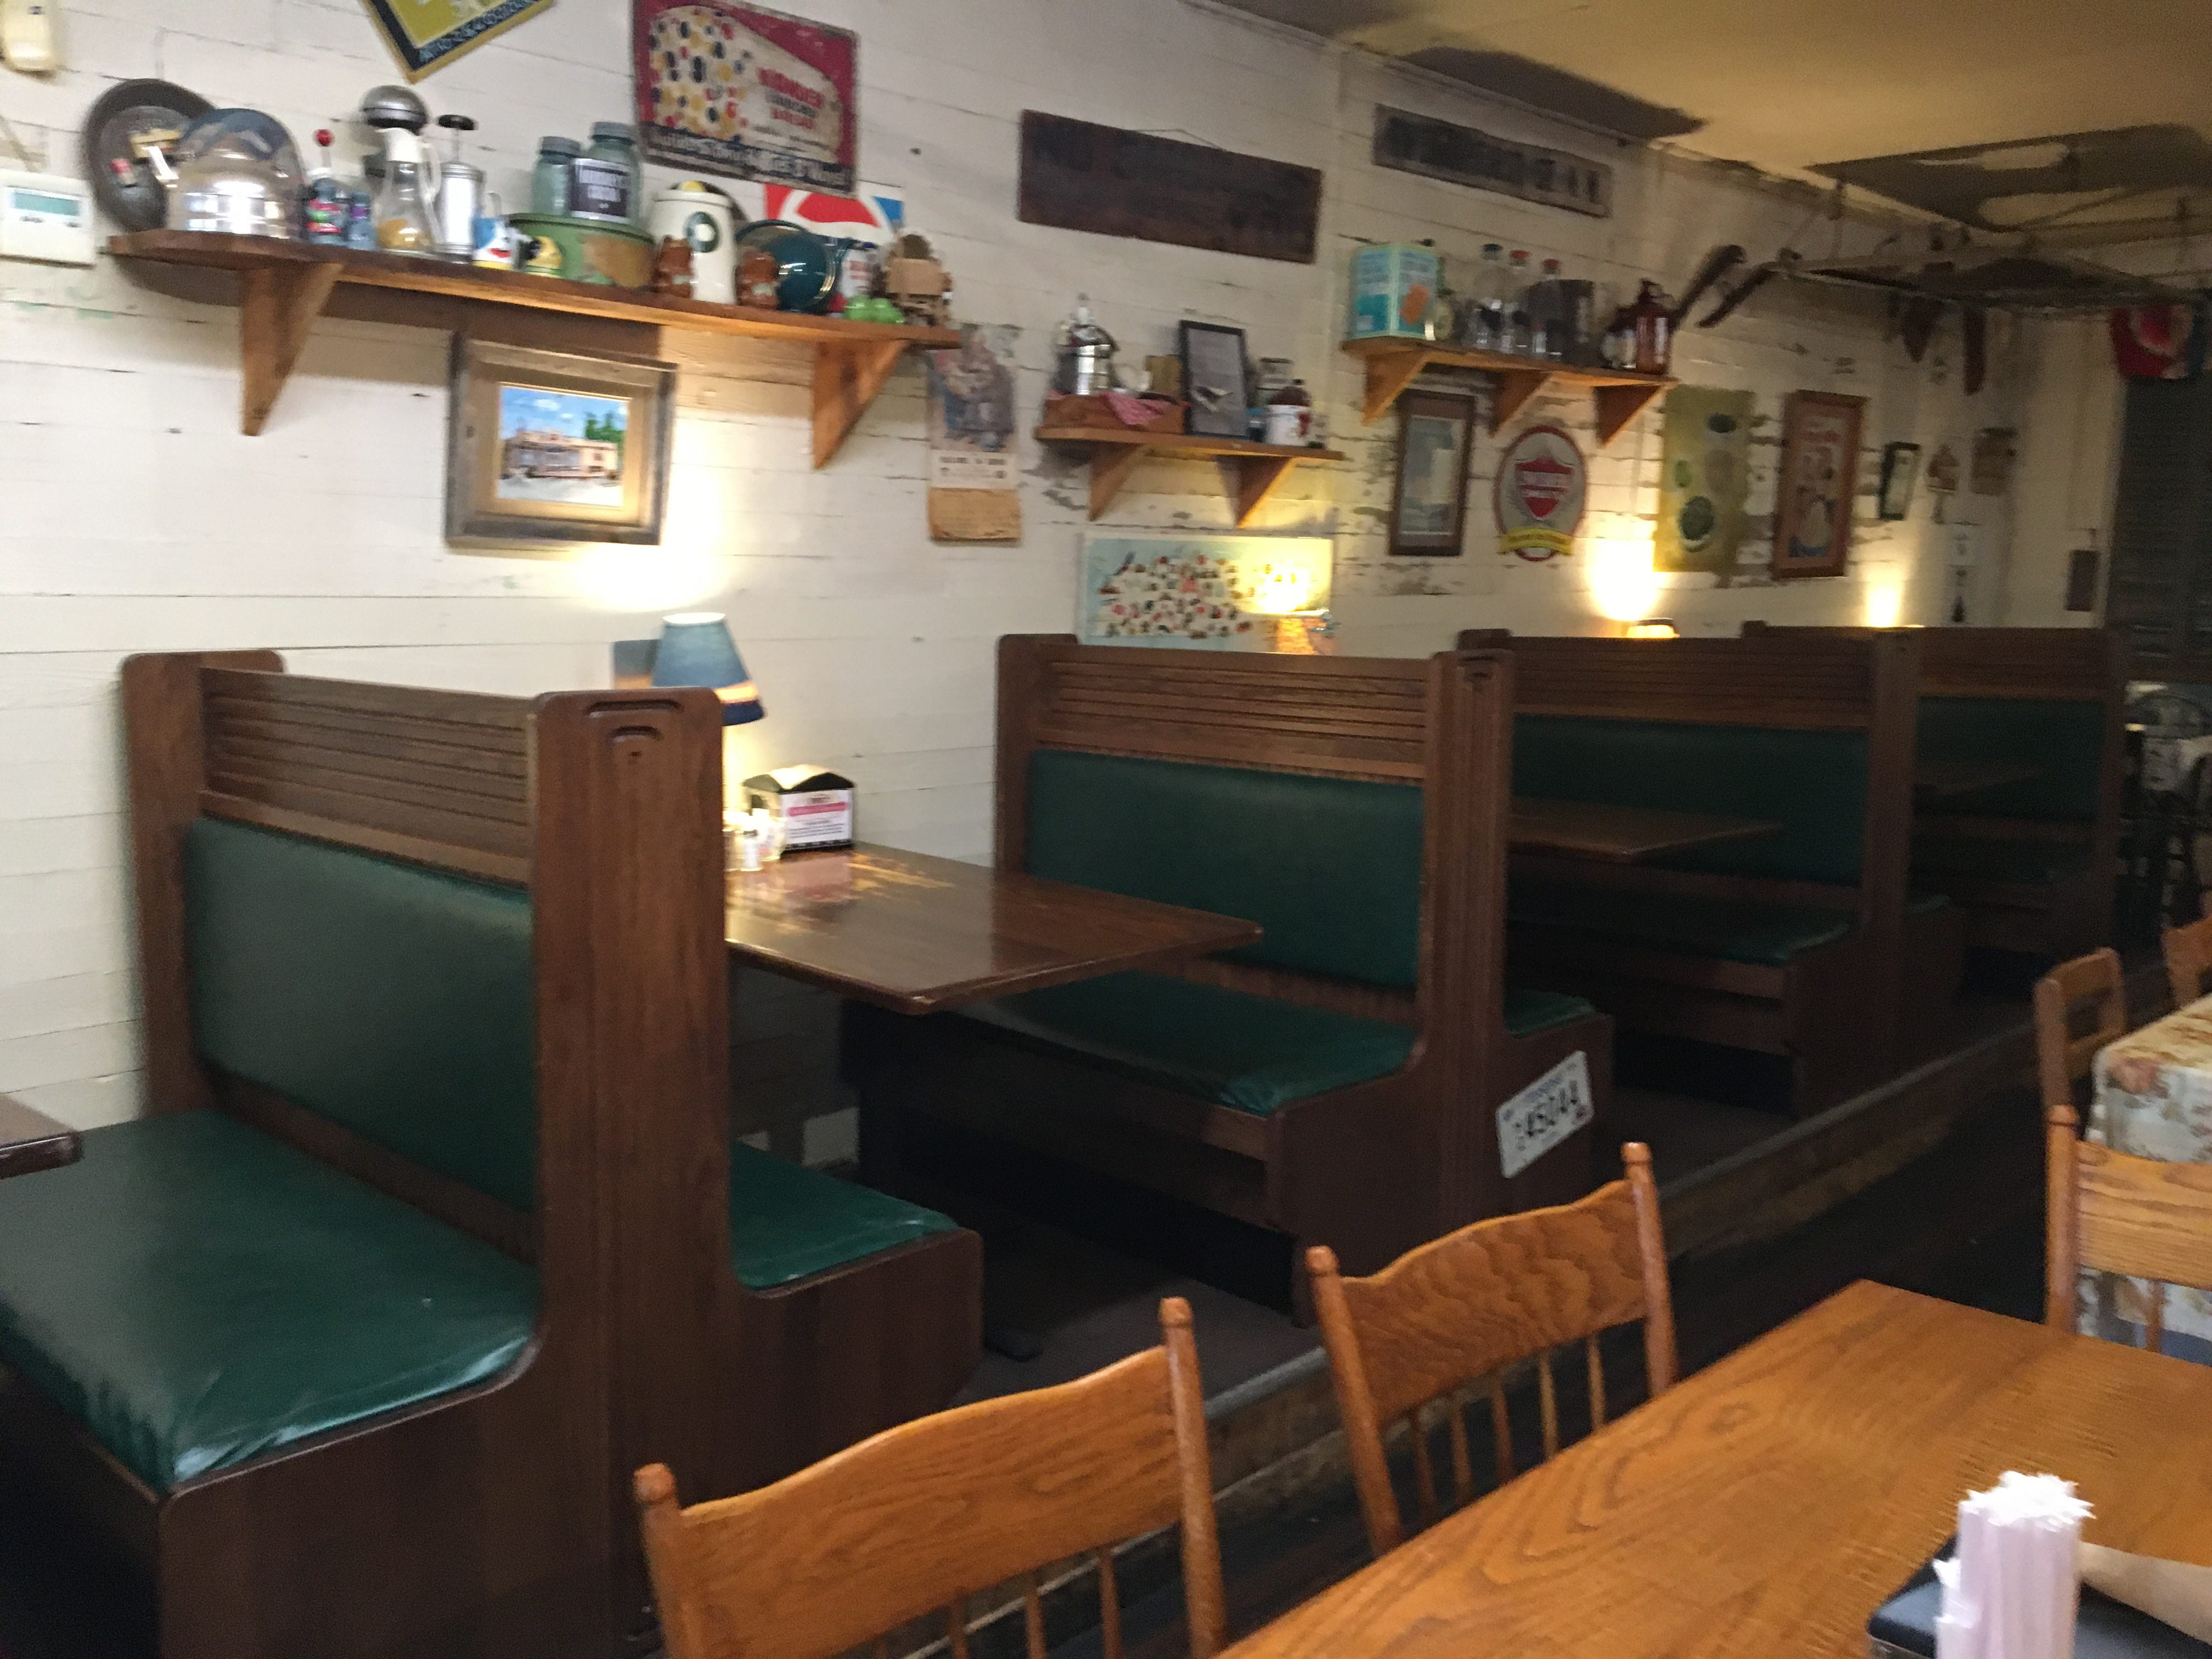 Walls of Miller's Grocery are decorated with memorabilia from days gone by, creating a homey feel like you'd have at Grandma's, owner Lara Phillips said.